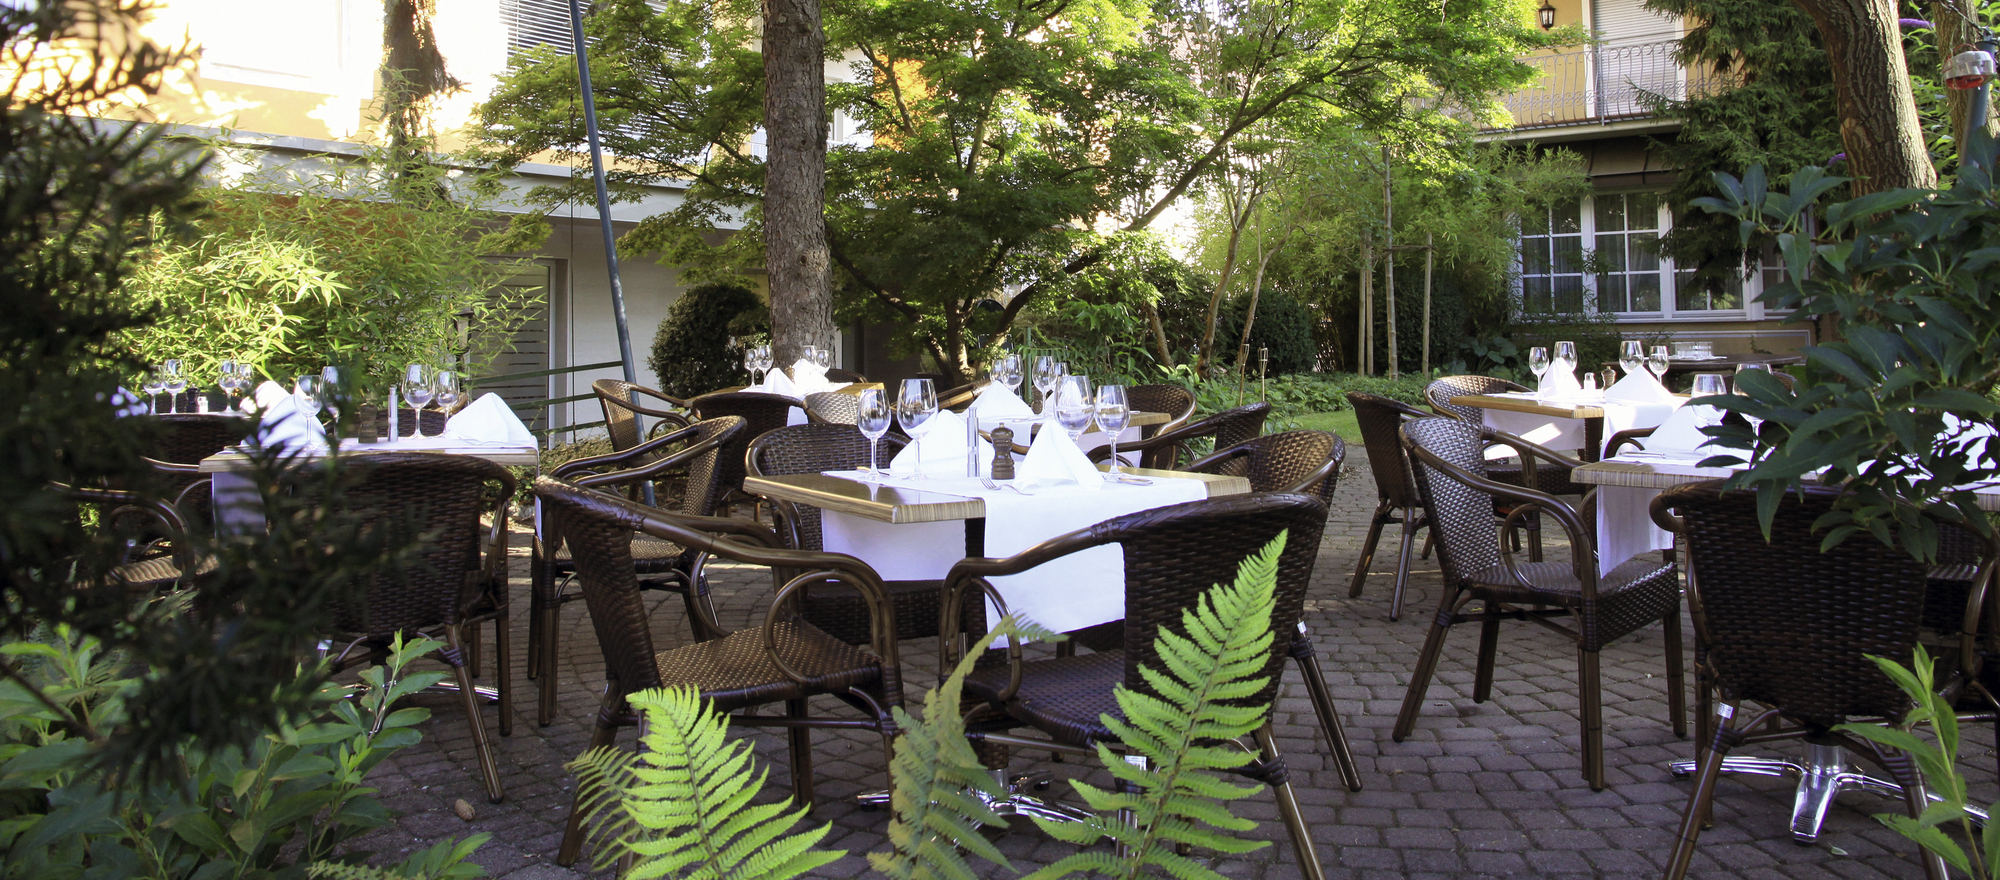 Garden restaurant with sun terrace in Ringhotel Zum Goldenen Ochsen in Stockach, 4 star hotel at Lake Constance